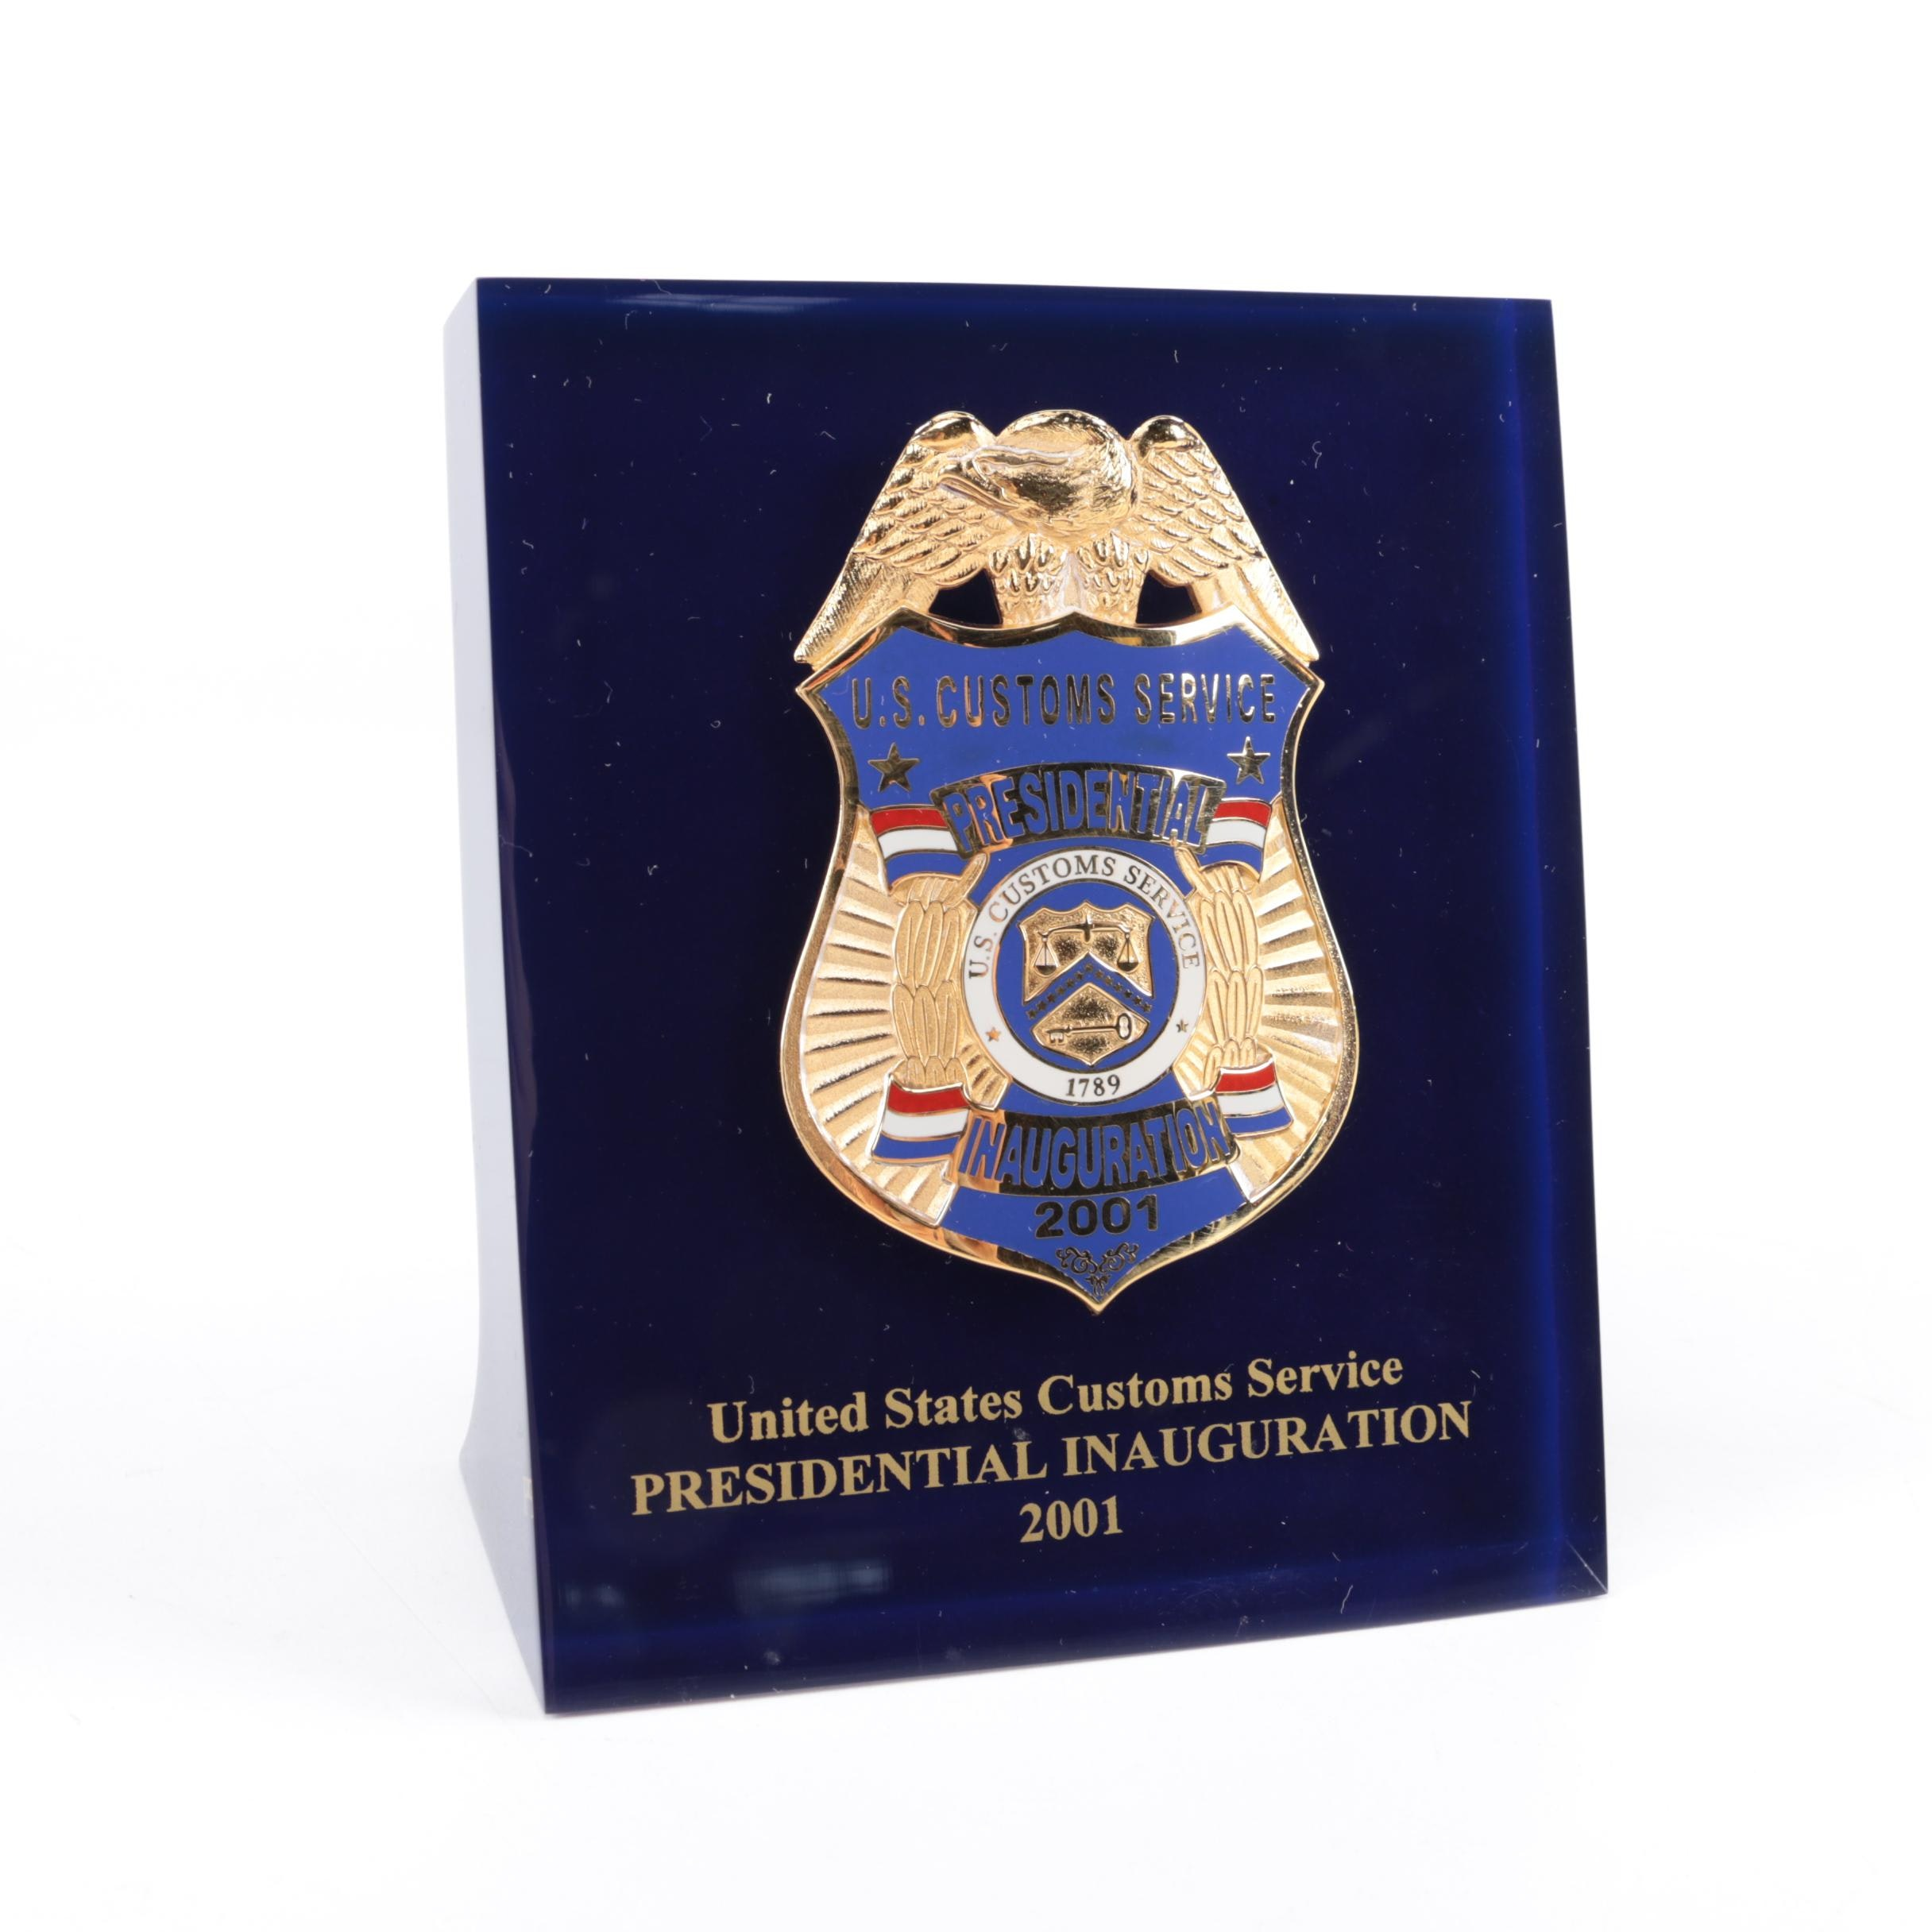 2001 United States Customs Service Presidential Inauguration Badge